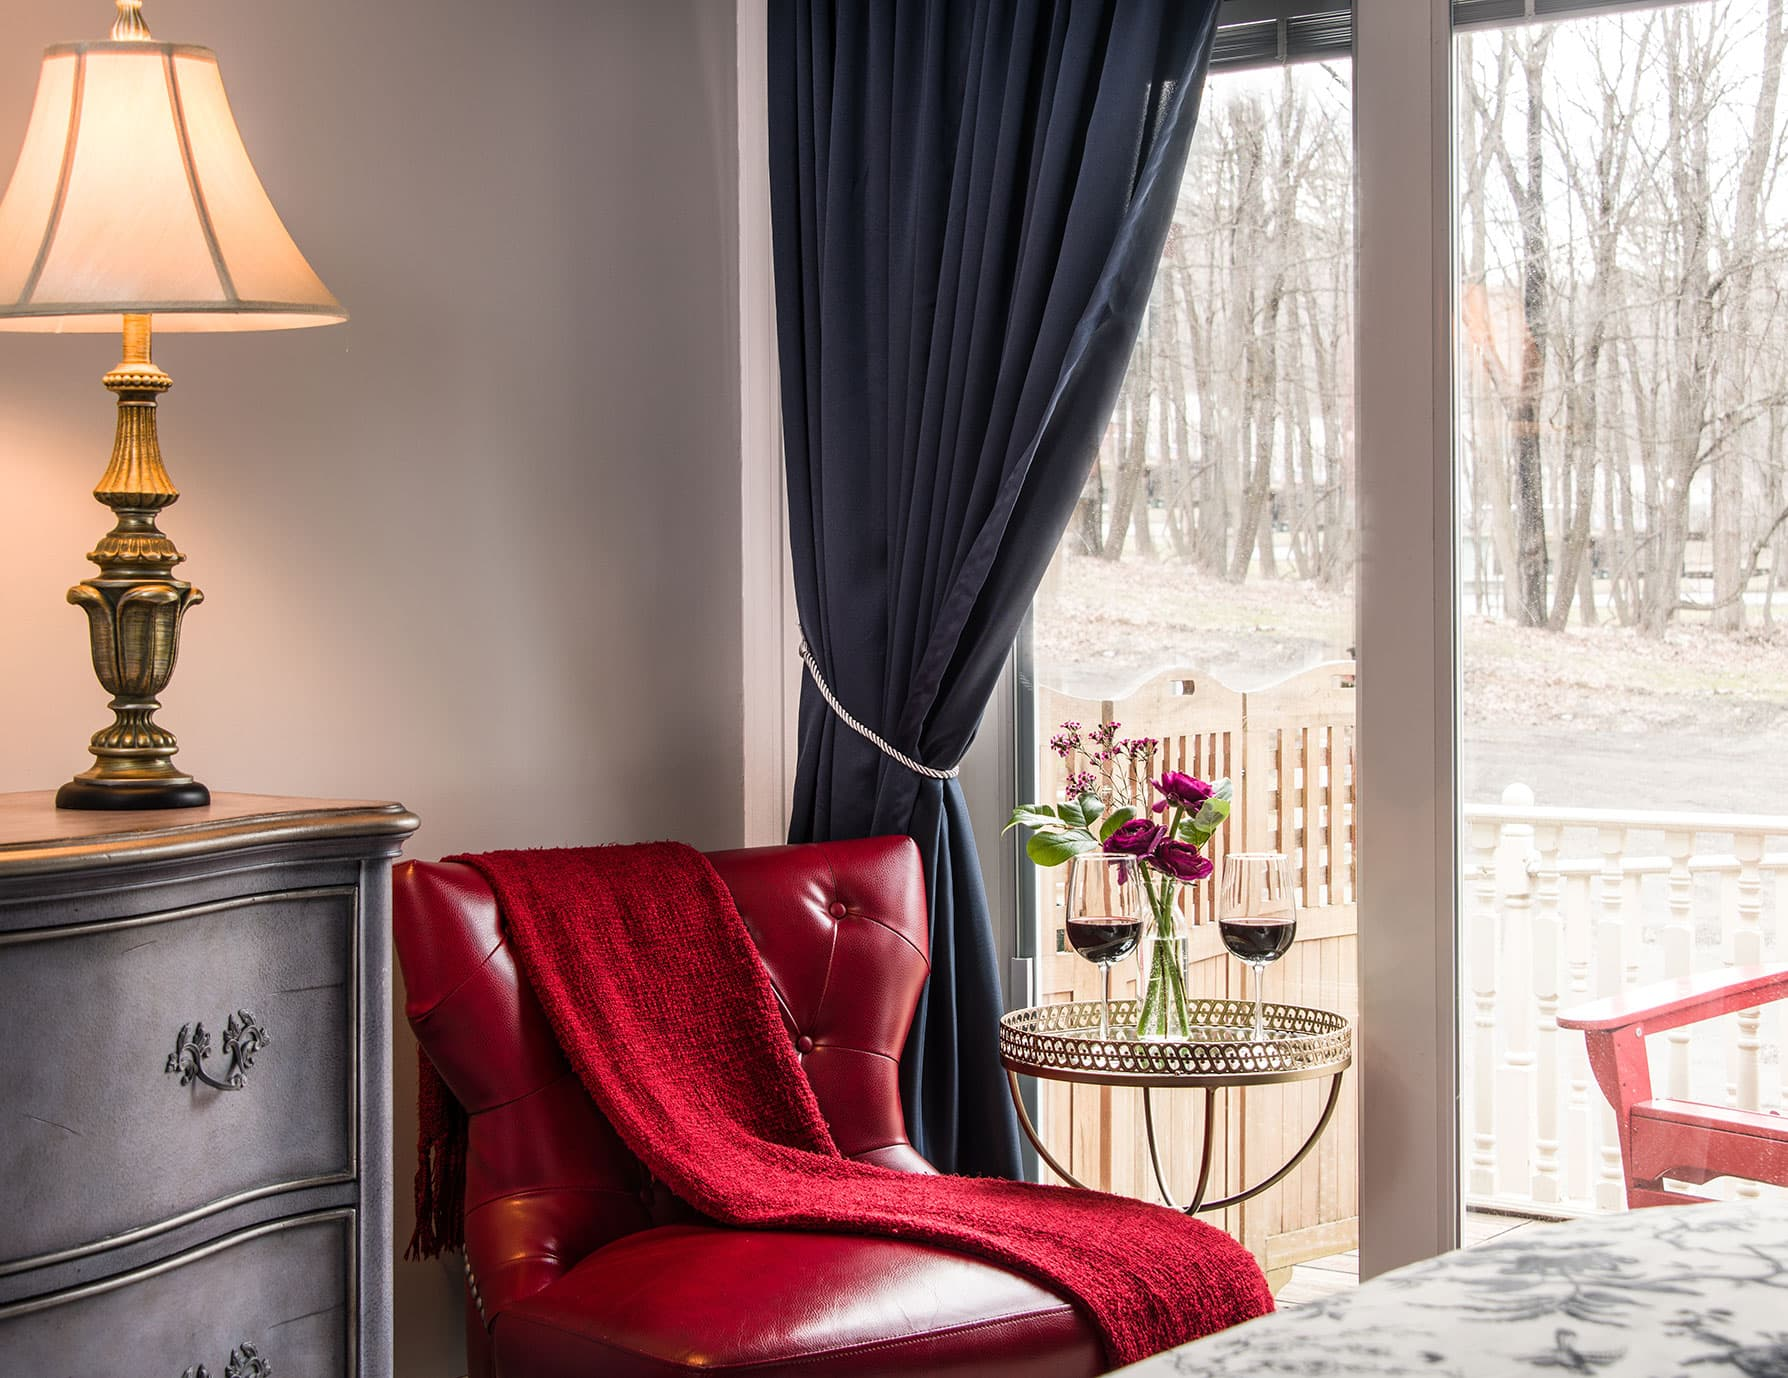 Plush red chair next to table with wine glasses and glass doors looking out on a Cooperstown Bed and Breakfast